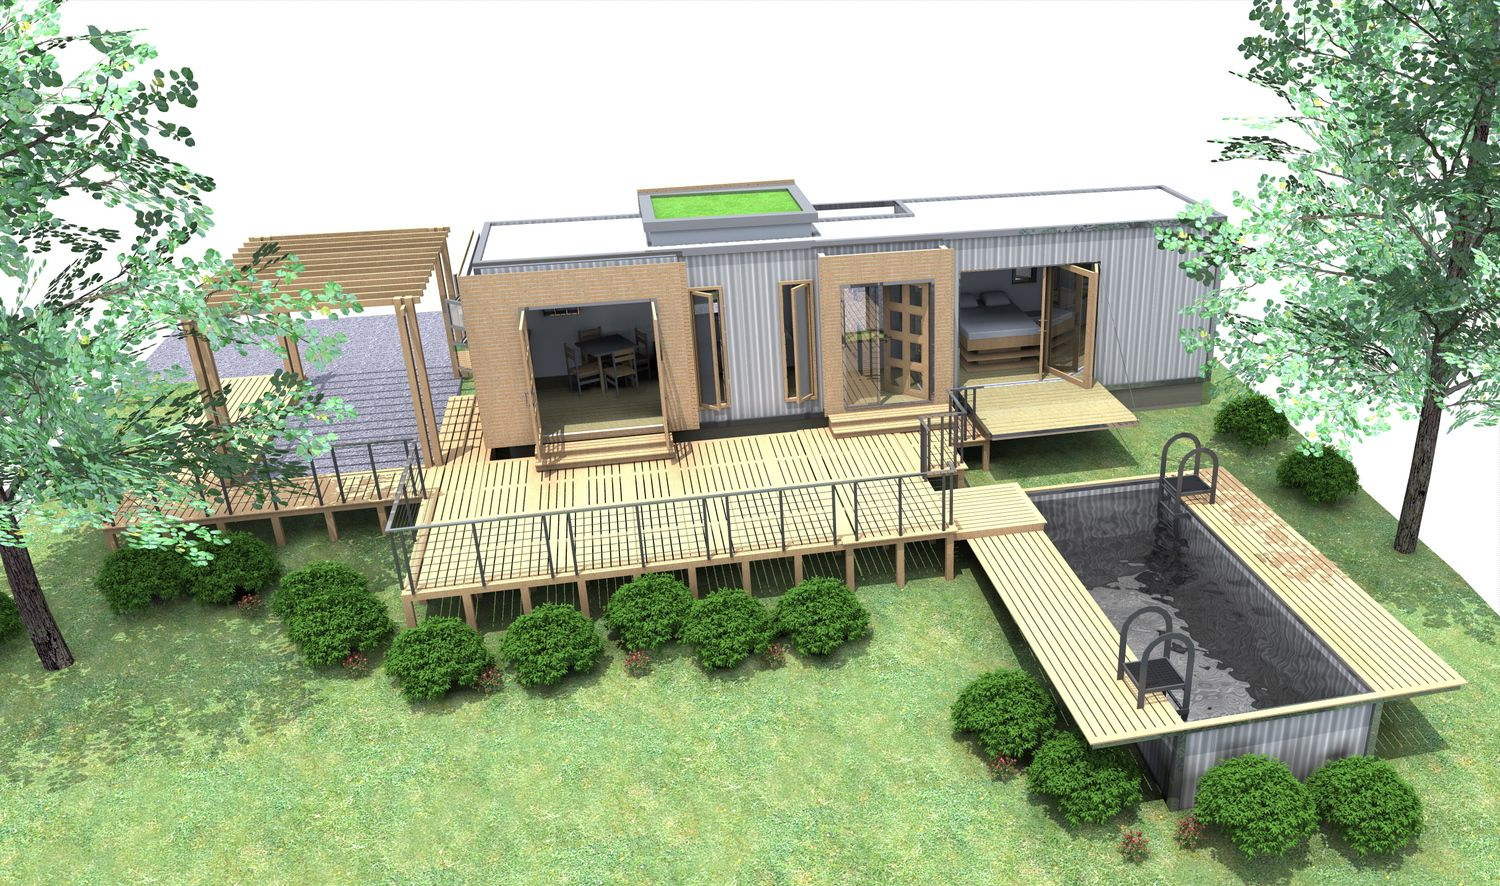 I would soooooo live here container home Houses plans for sale